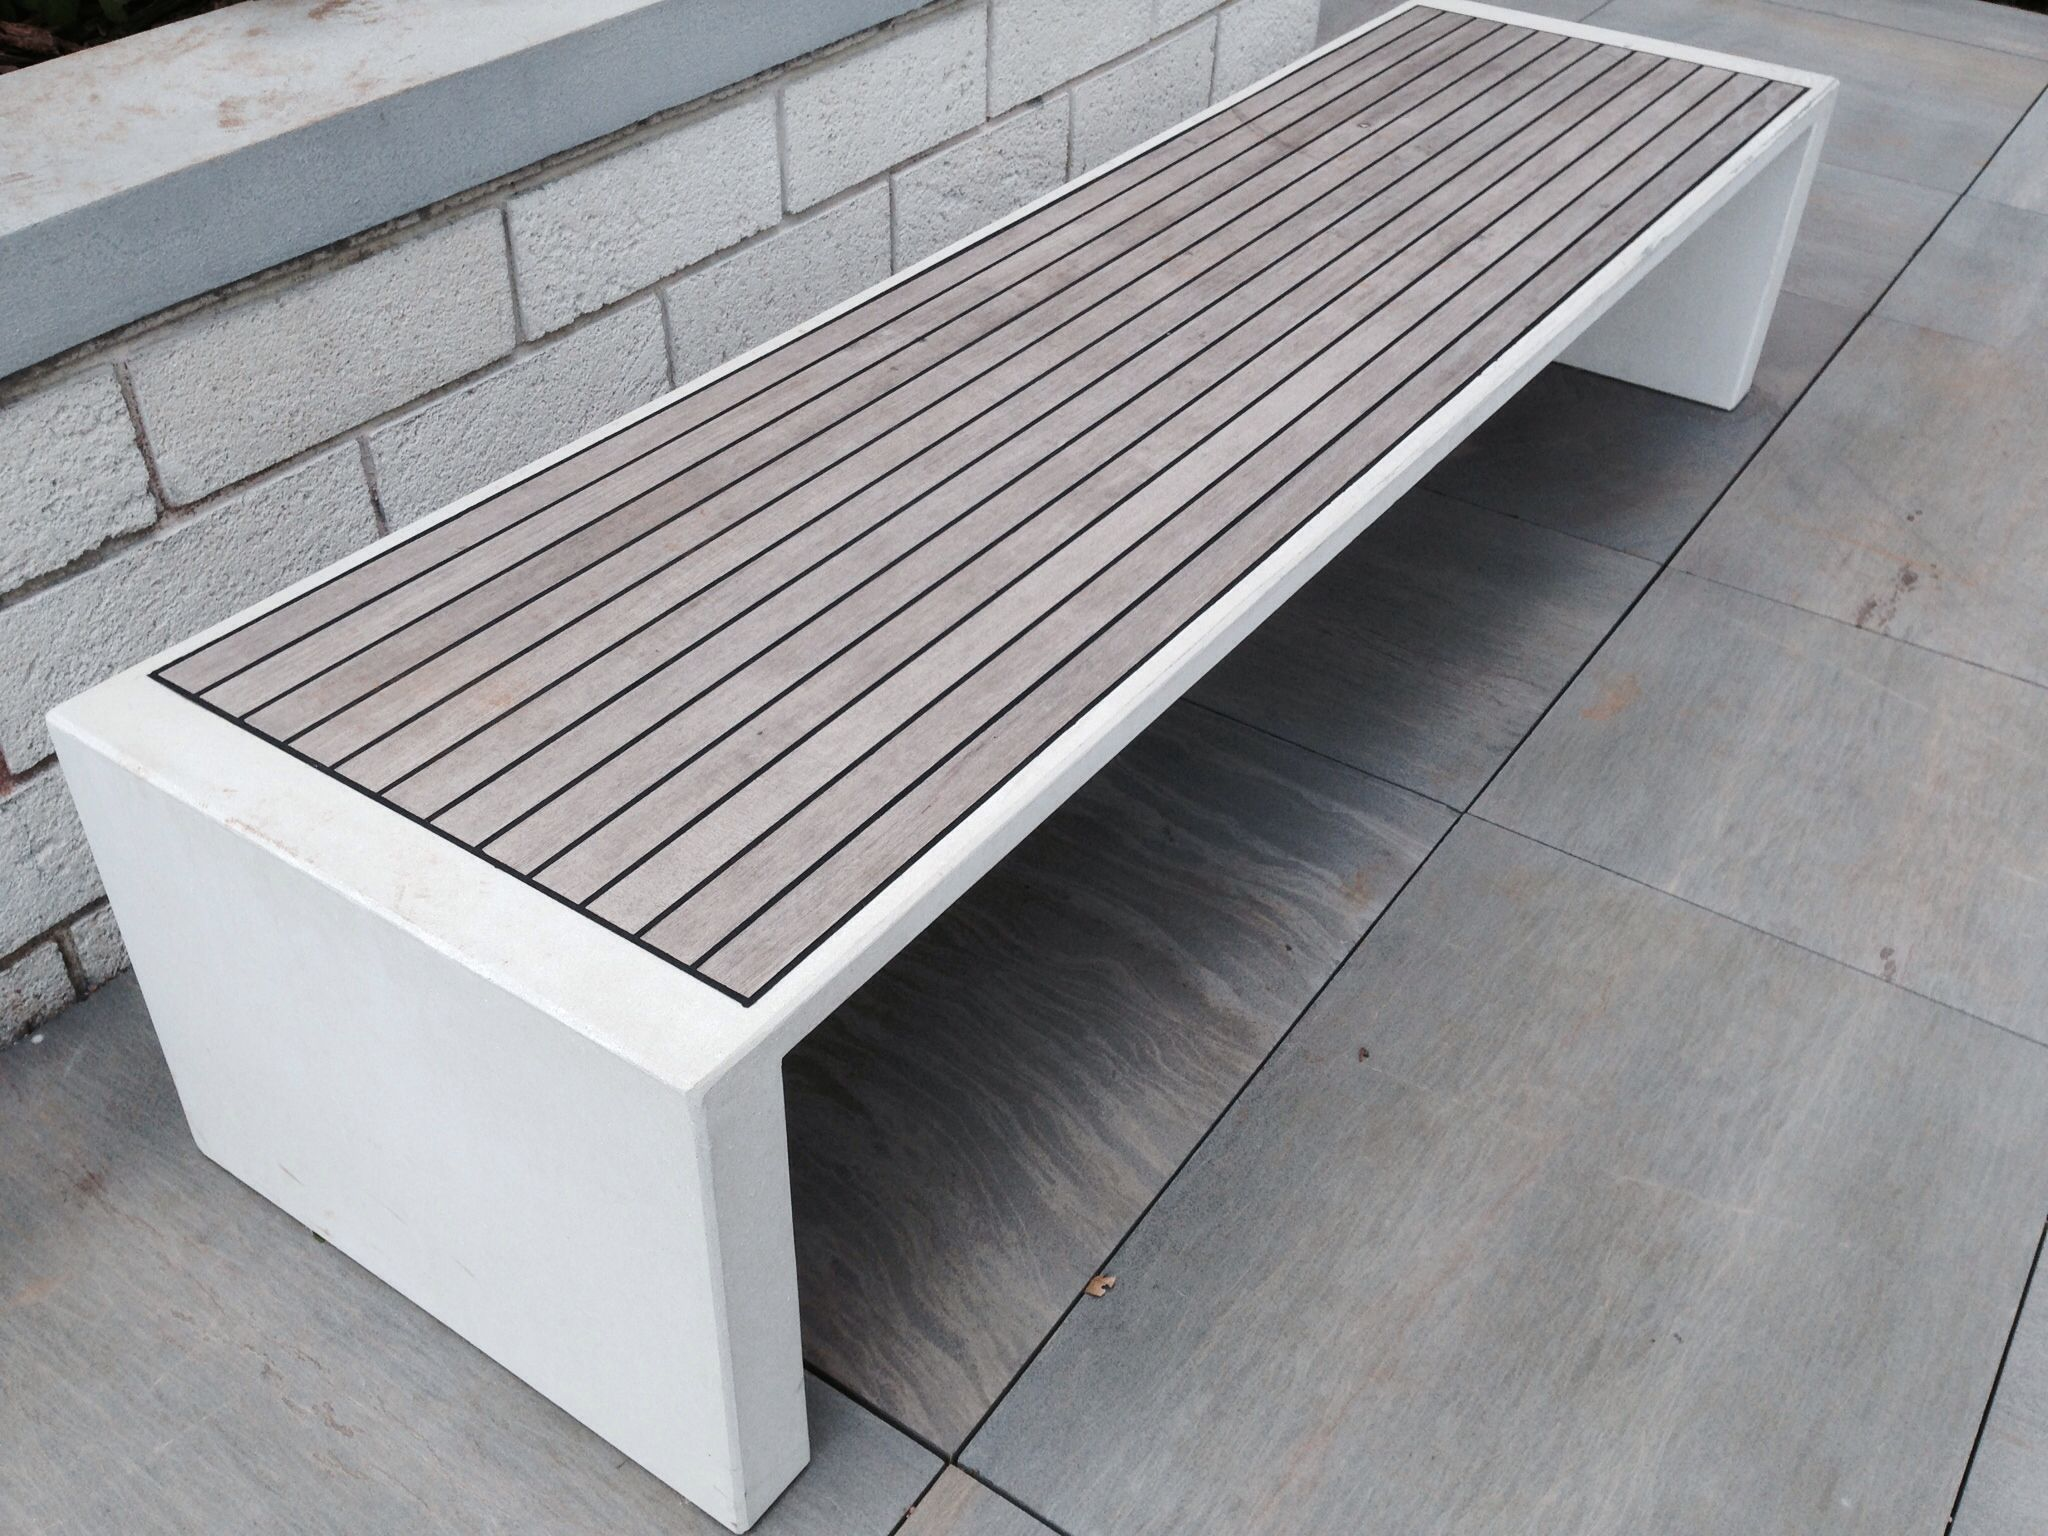 Incredible Modern Outdoor Bench Wood And Concrete Dream House Andrewgaddart Wooden Chair Designs For Living Room Andrewgaddartcom